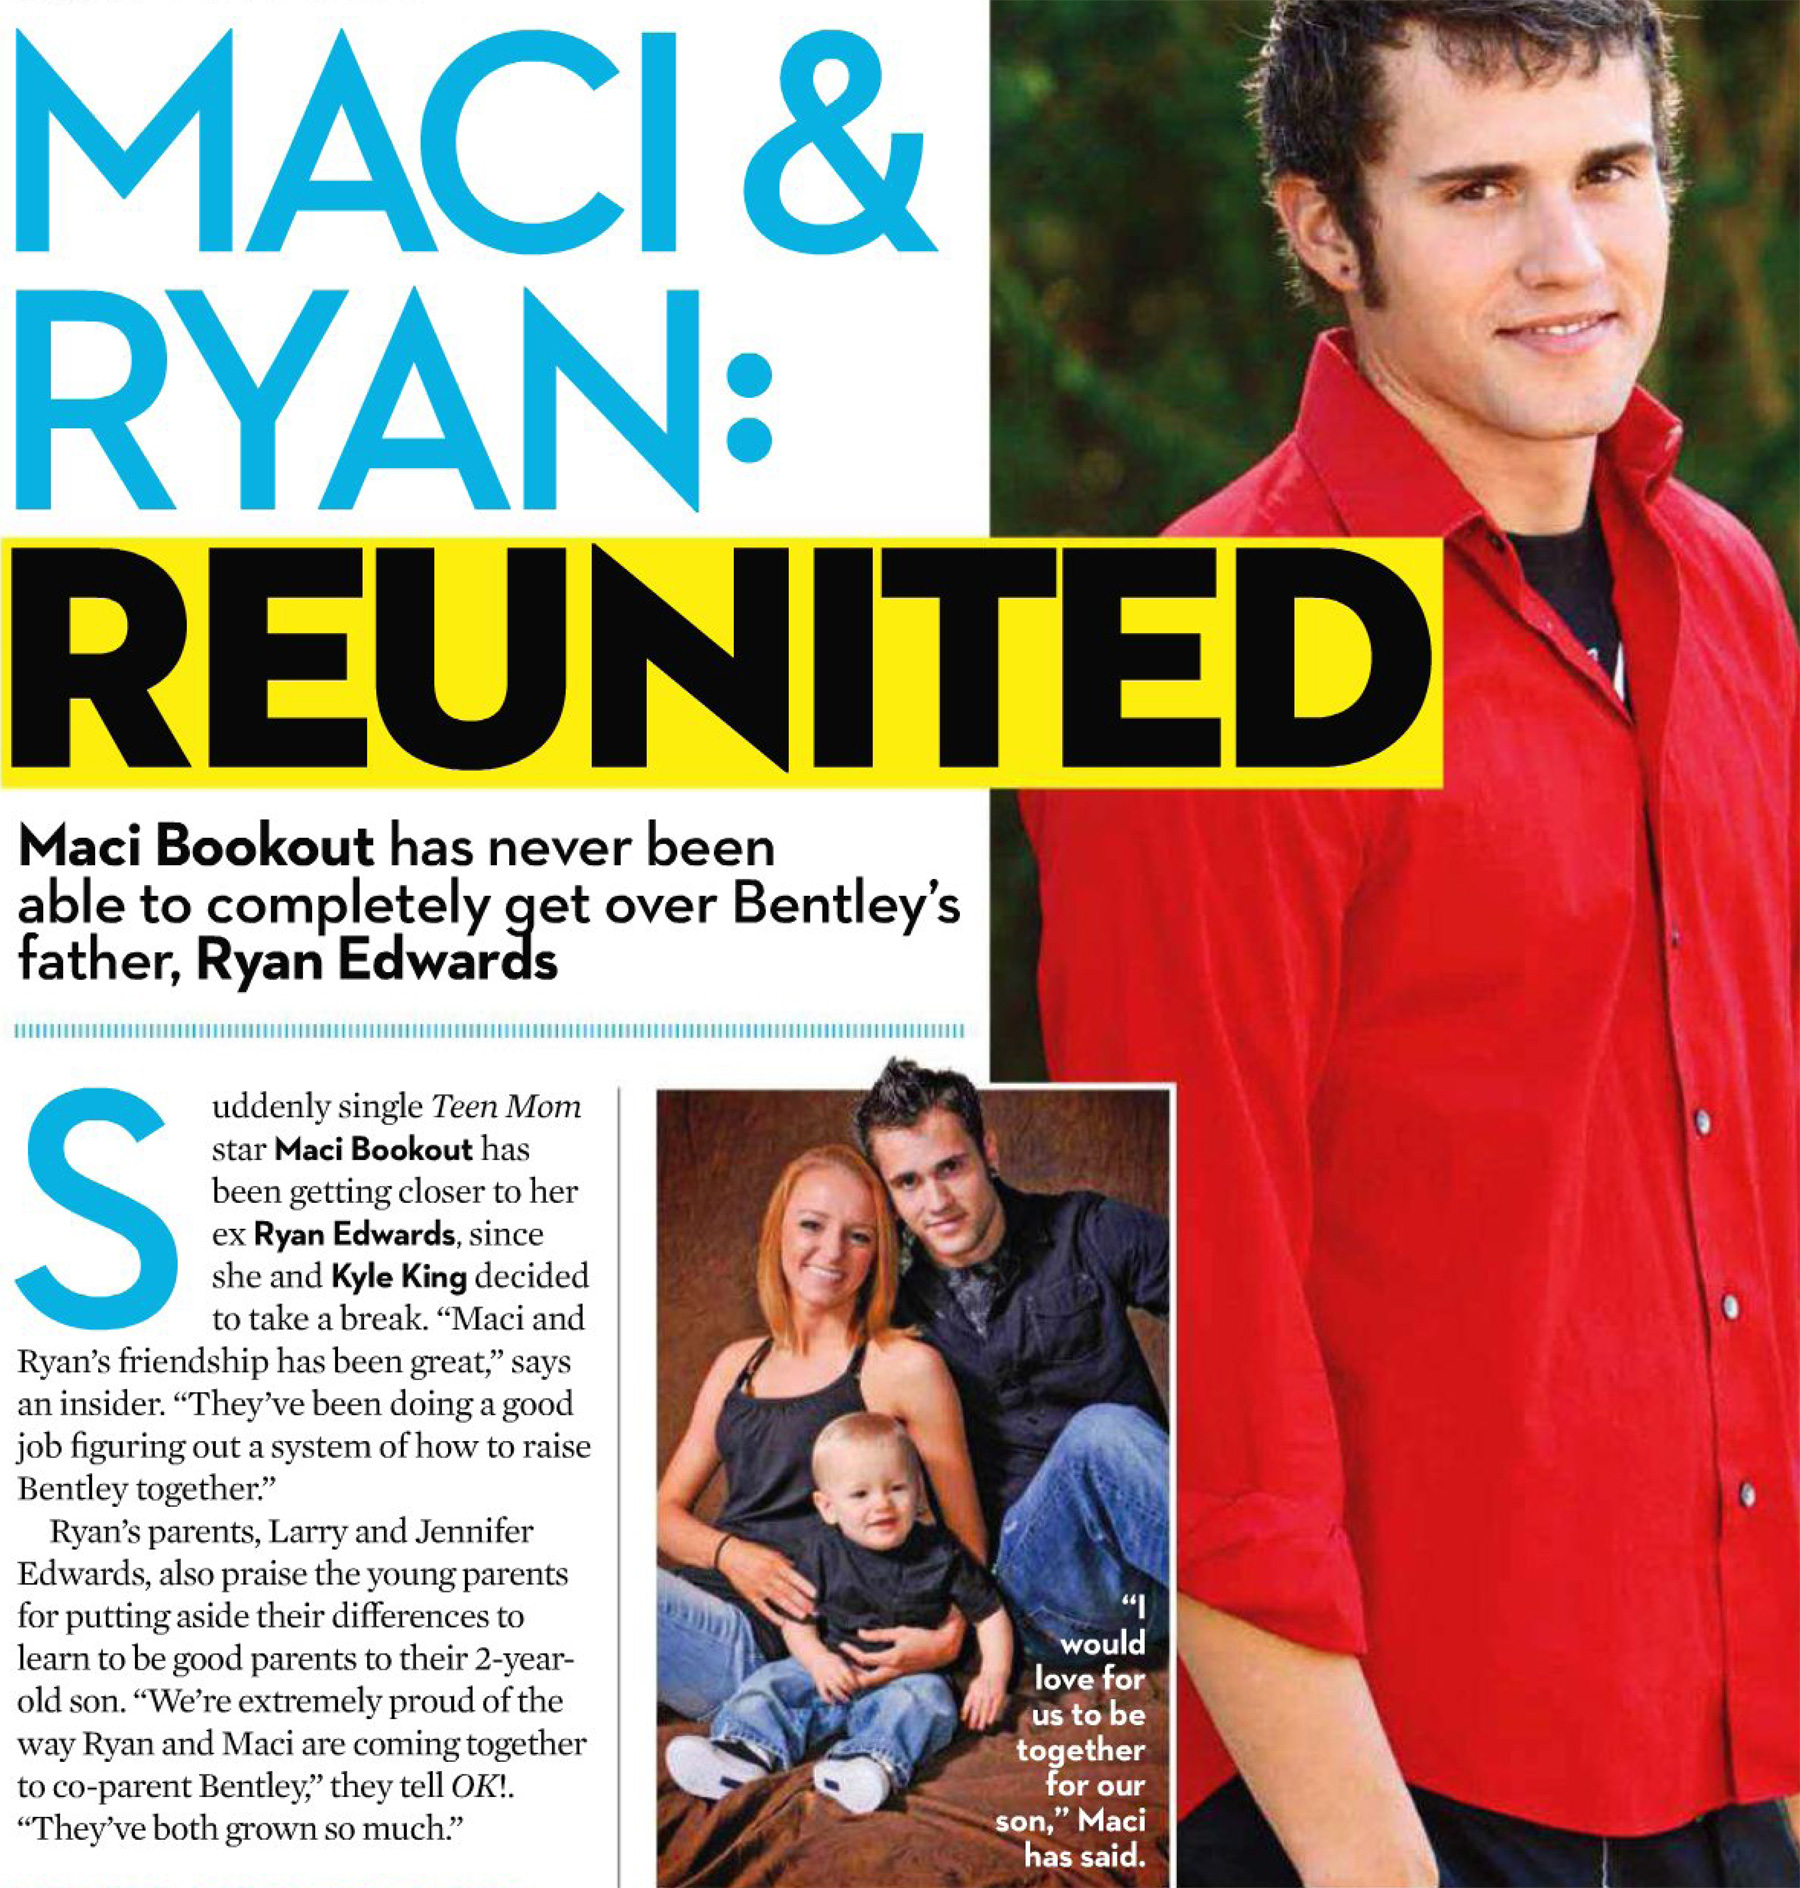 OK magazine story about Teen Mom Maci Bookout and Ryan Edwards getting